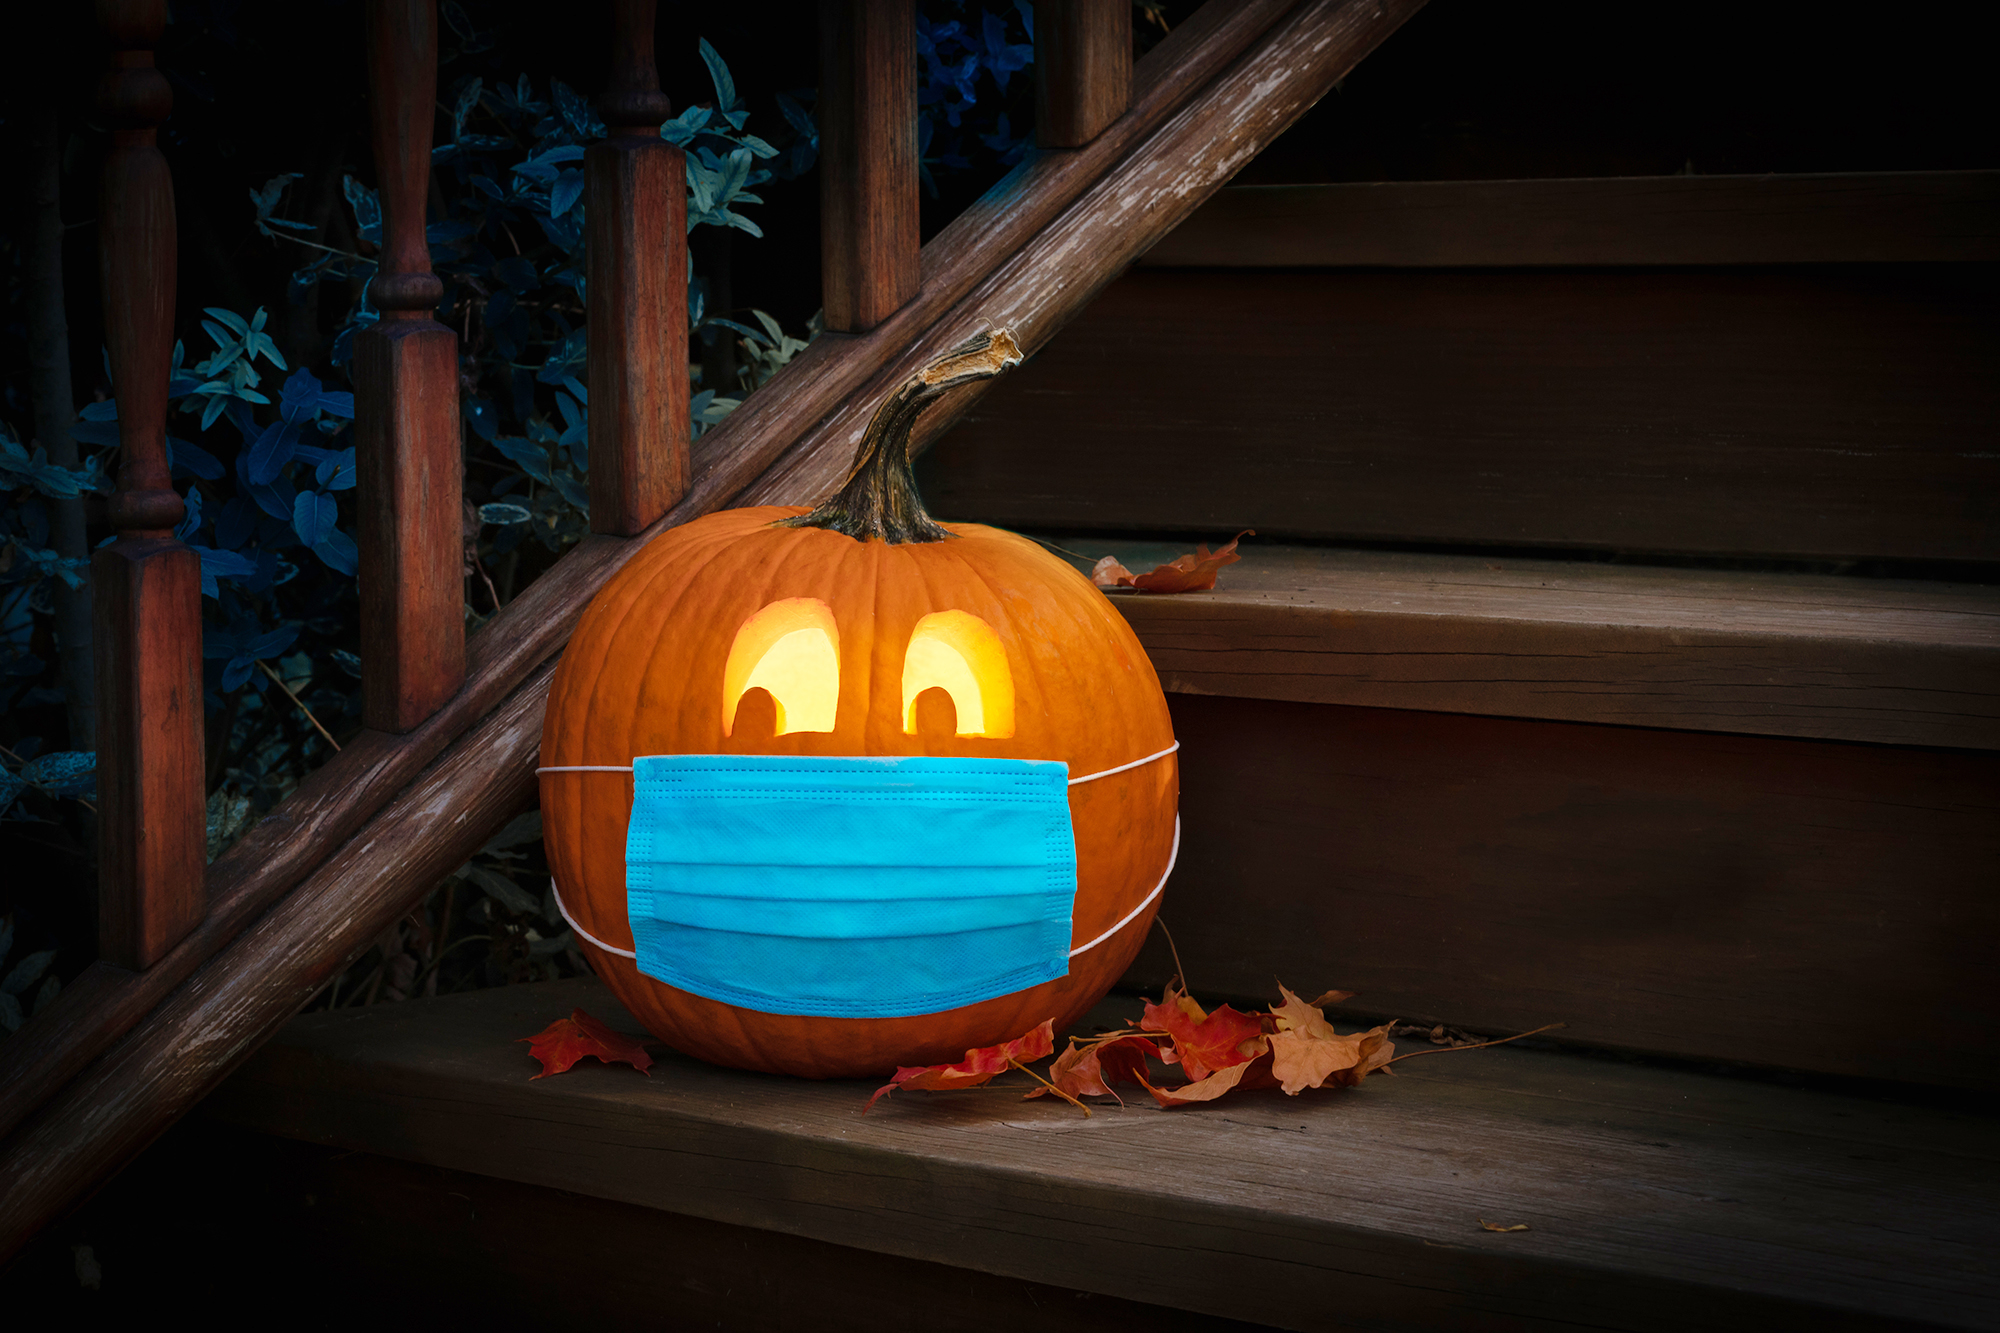 CDC Halloween Guidelines , Lighted Halloween Pumpkin Jack o Lantern Wearing Covid PPE Mask On Steps